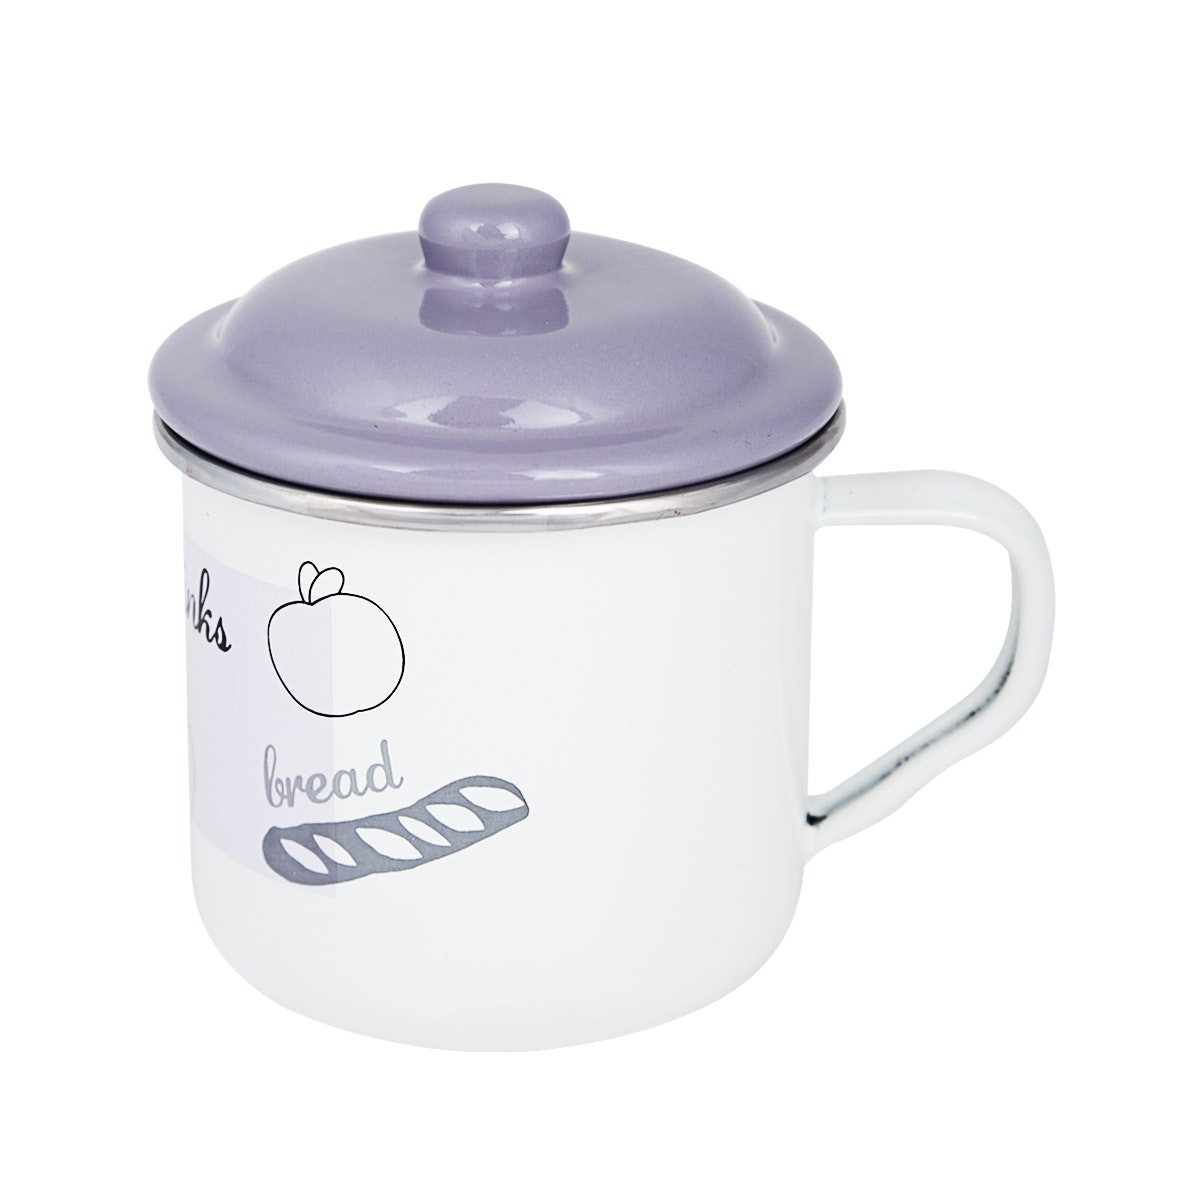 Chefina Family Cooking Mug 10cm